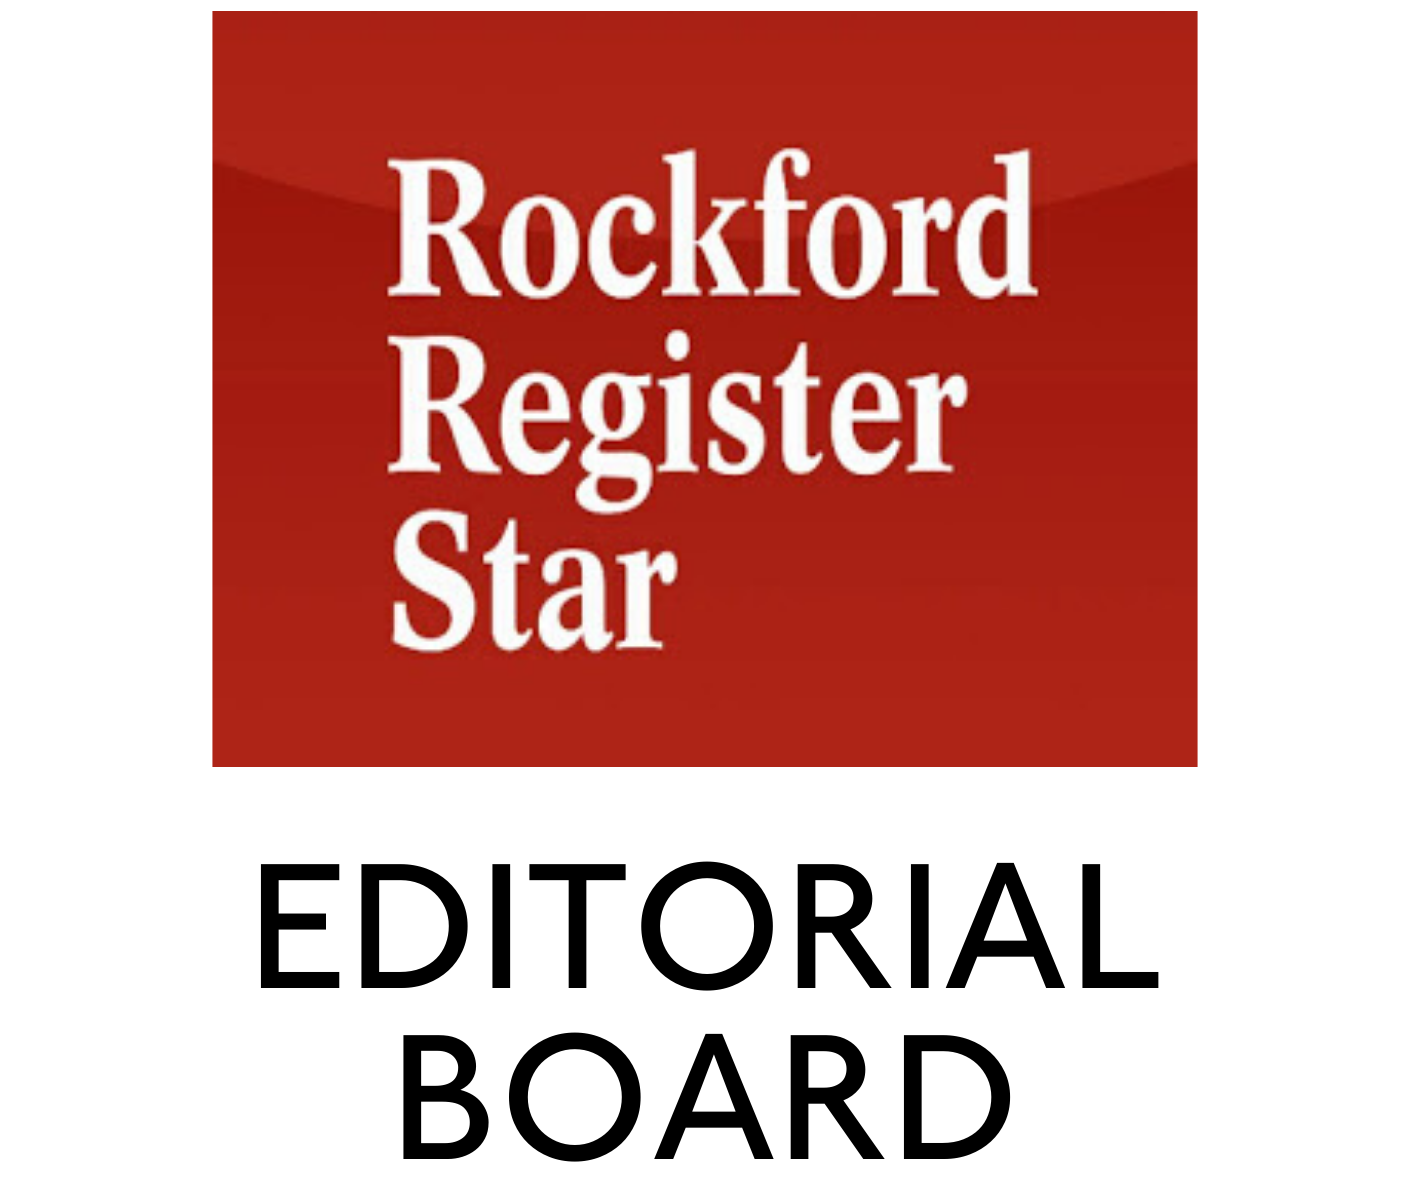 Rockford Register Star Editorial Board